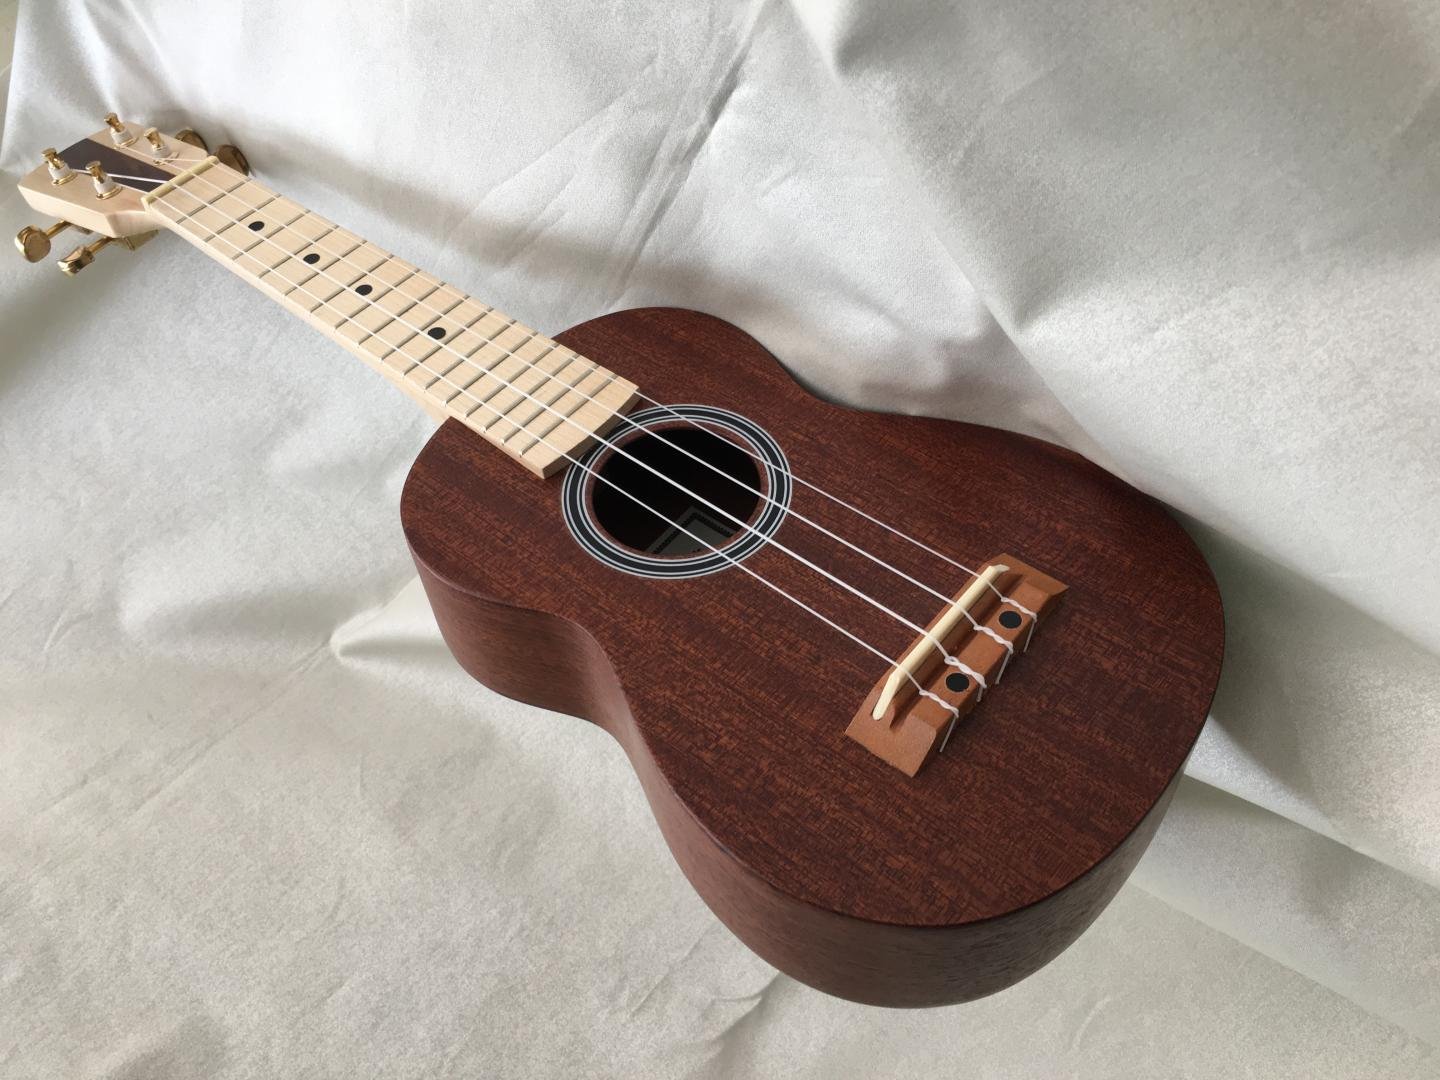 BRUKO GEWA UKULELE SOPRANO SI-FA#-RE-LA ou LA-MI-DO-SOL. NATUREL SATINE. TABLE ECLISSES & FOND ACAJOU MASSIF. MANCHE & TOUCHE ERABLE. **MADE IN EUROPE**